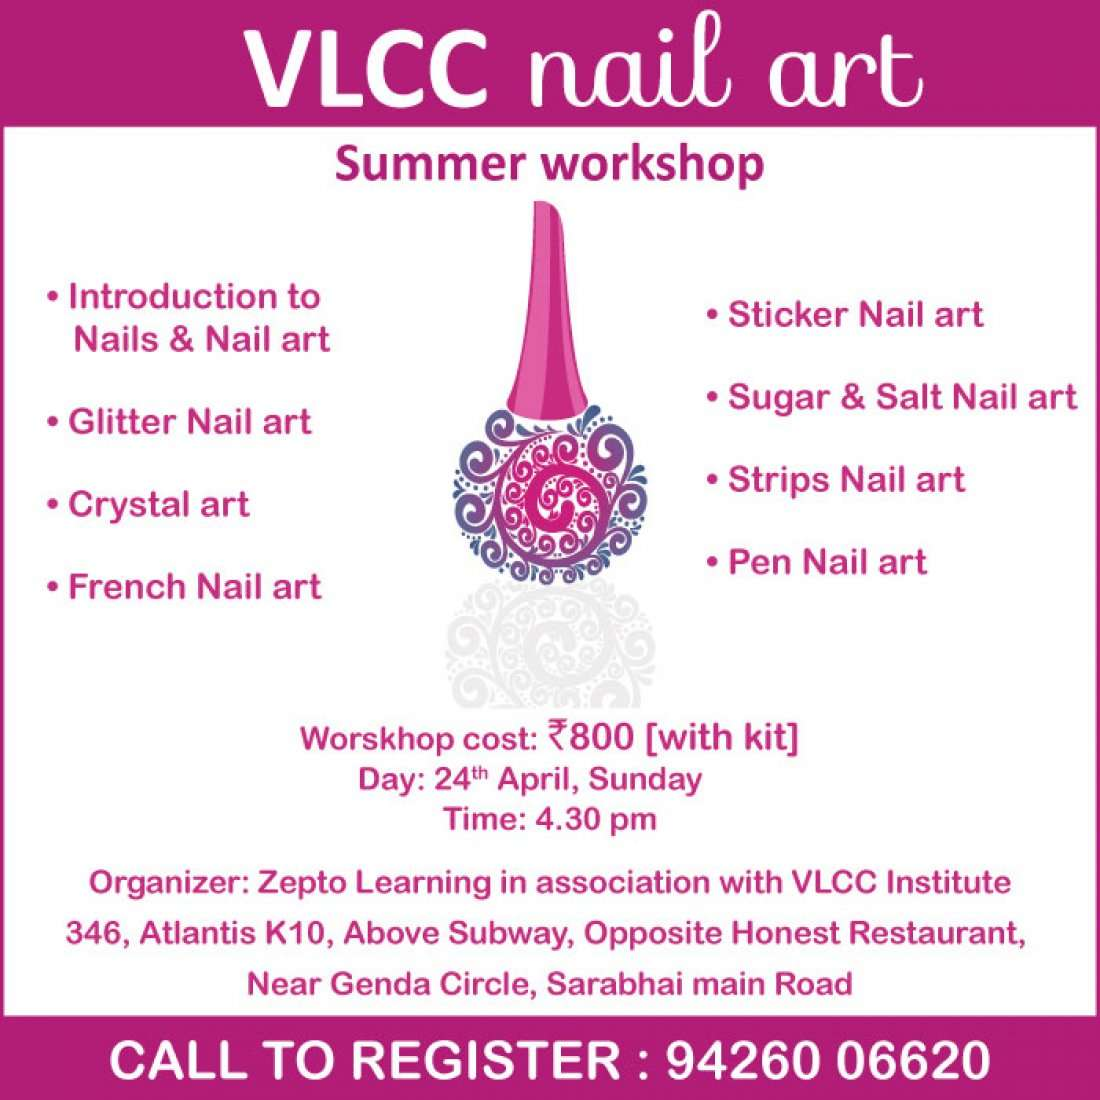 VLCC Nail Art Workshop At ZEPTO LEARNING CENTER A-346